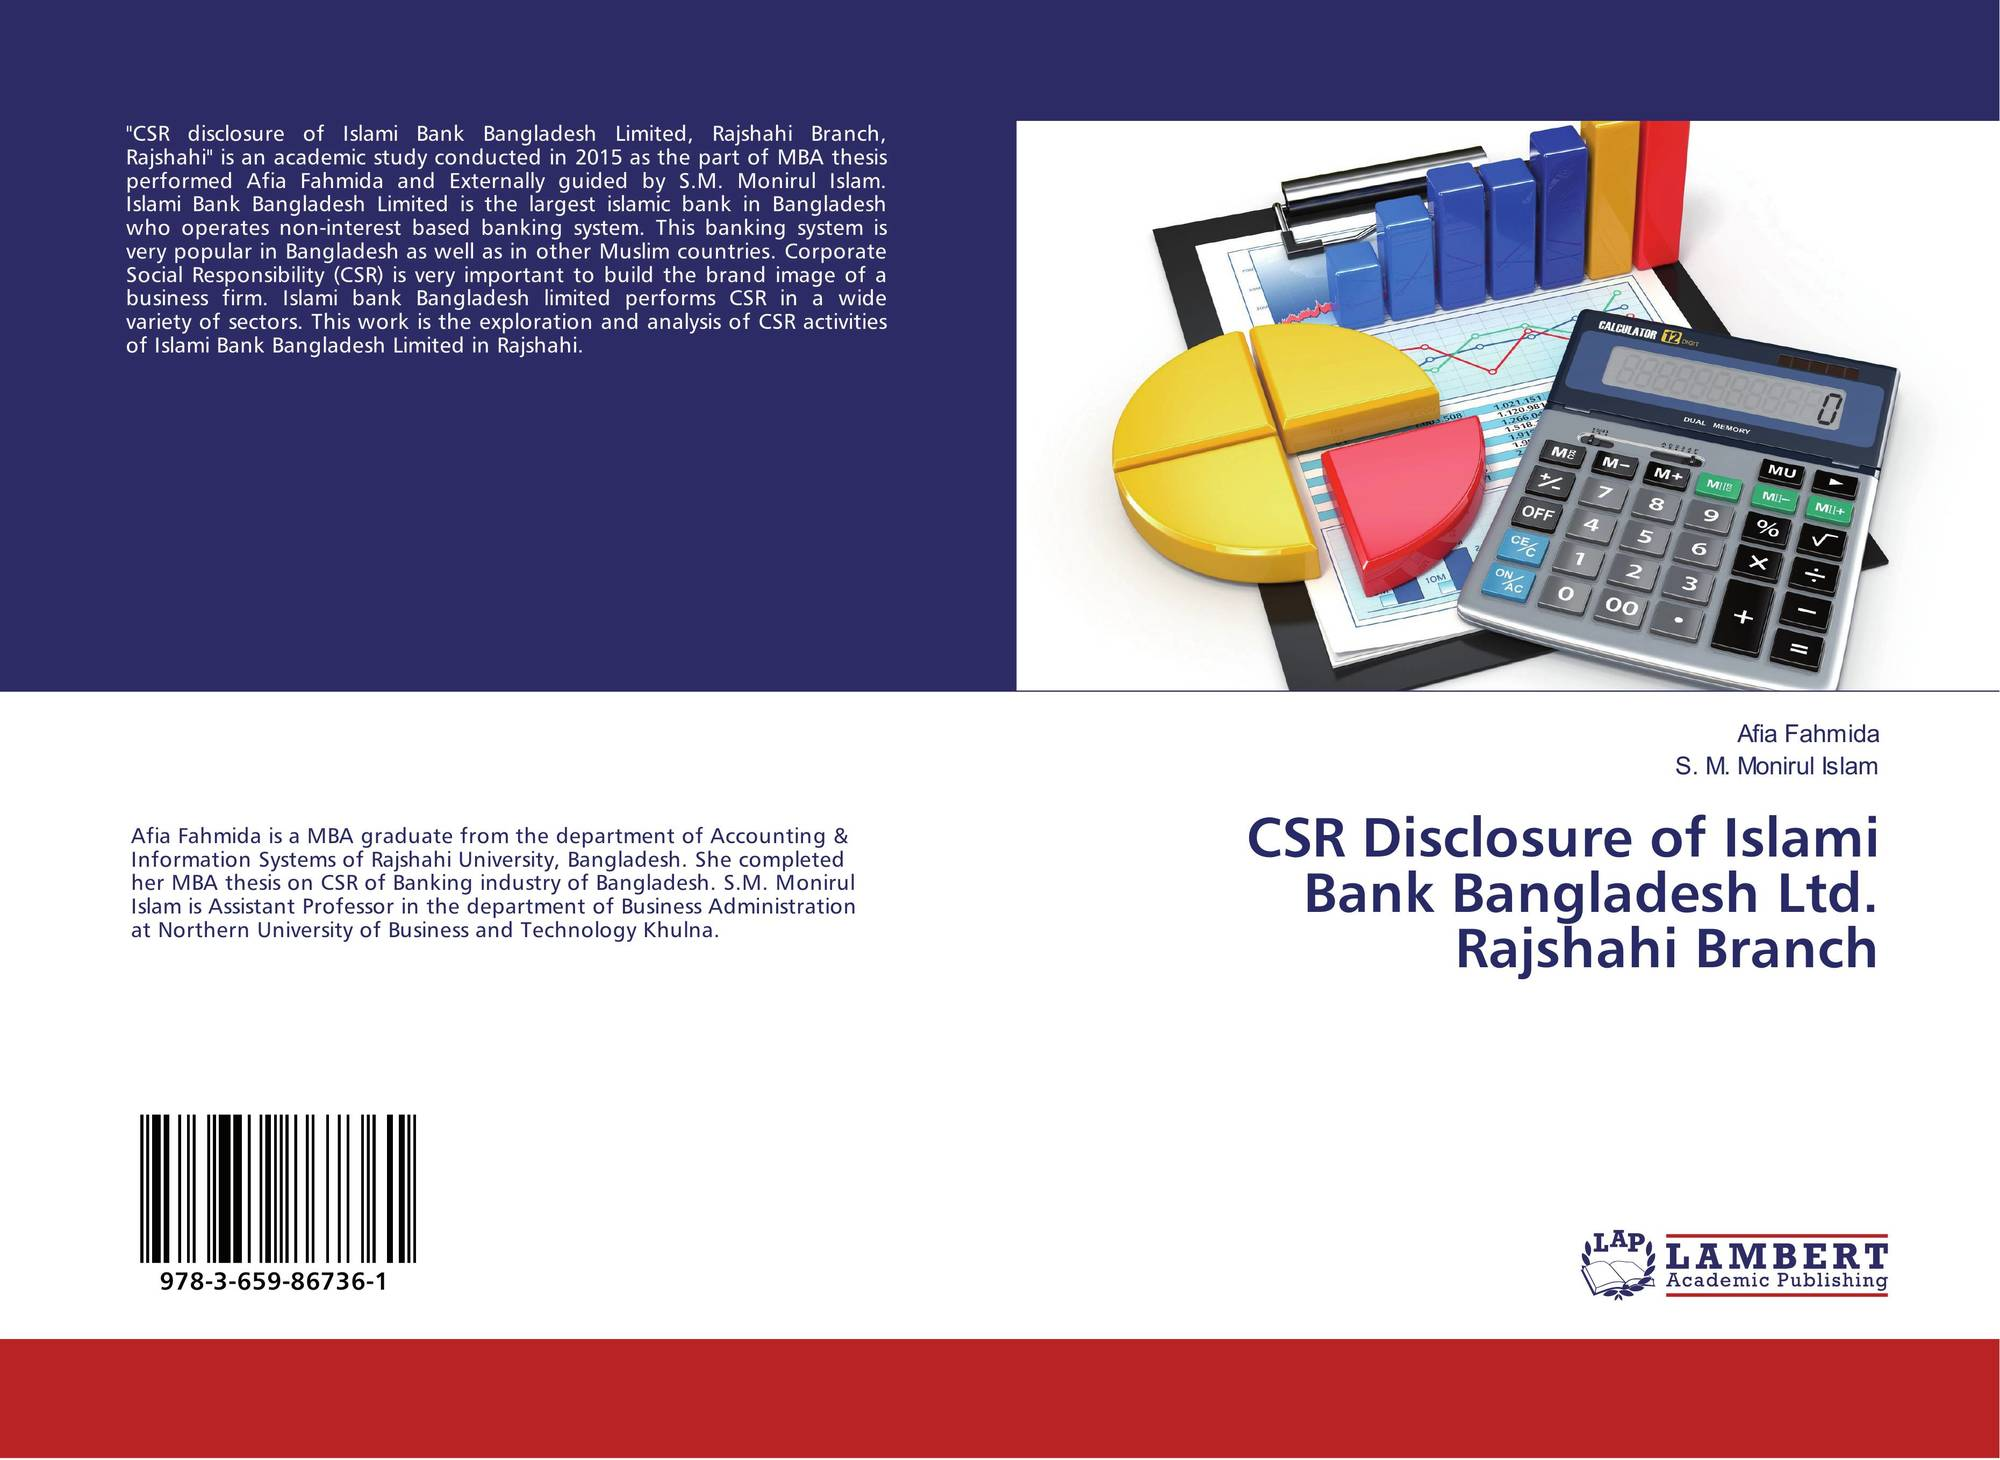 a thesis report on csr on banking sector in bangladesh Corporate social responsibility in commercial banking  aspects of csr in commercial banking and  report that banking sector suffered large.